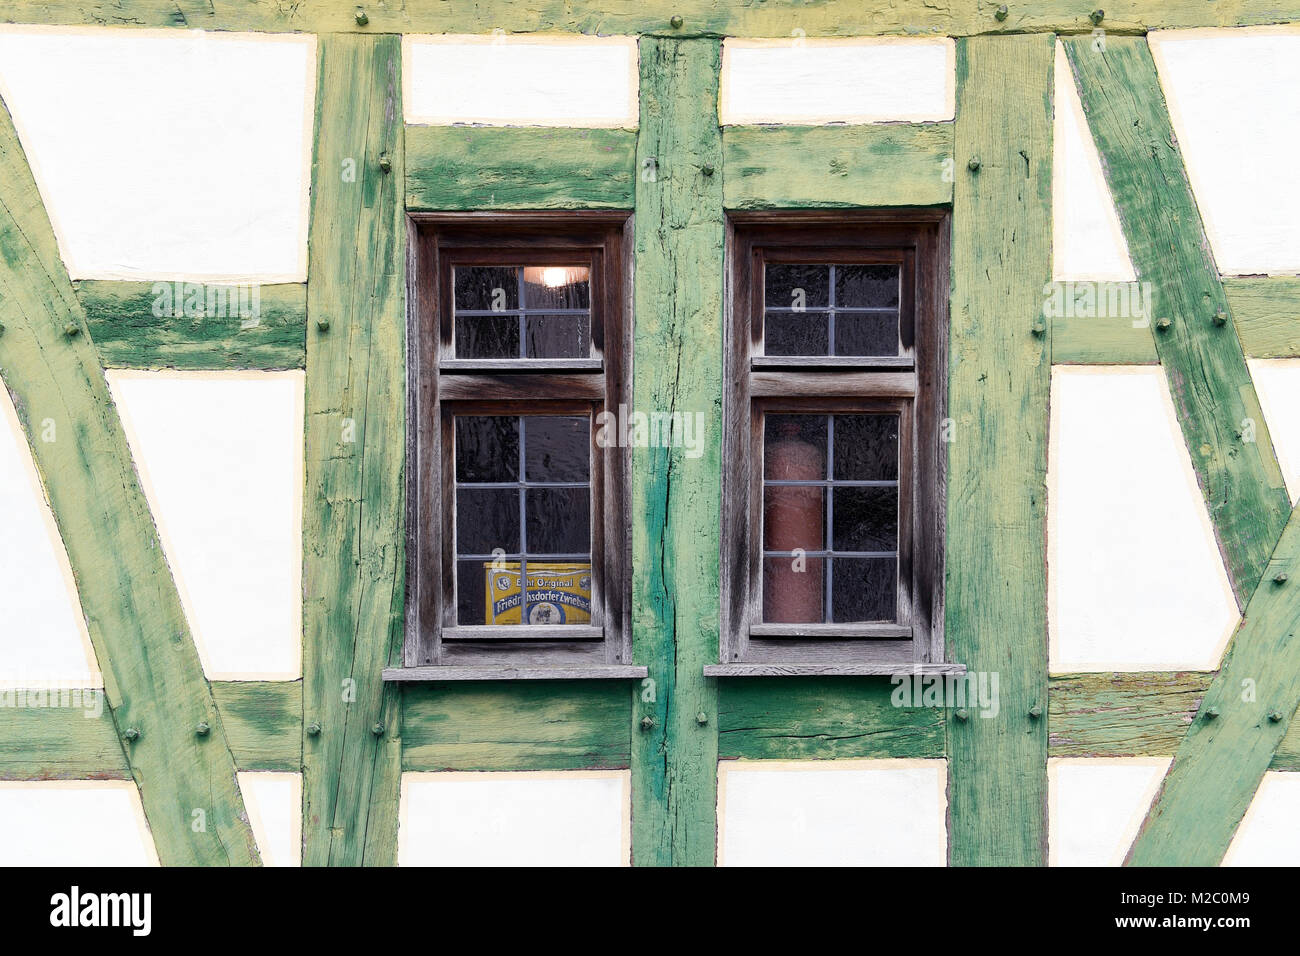 Old half-timbered house,Germany - Stock Image